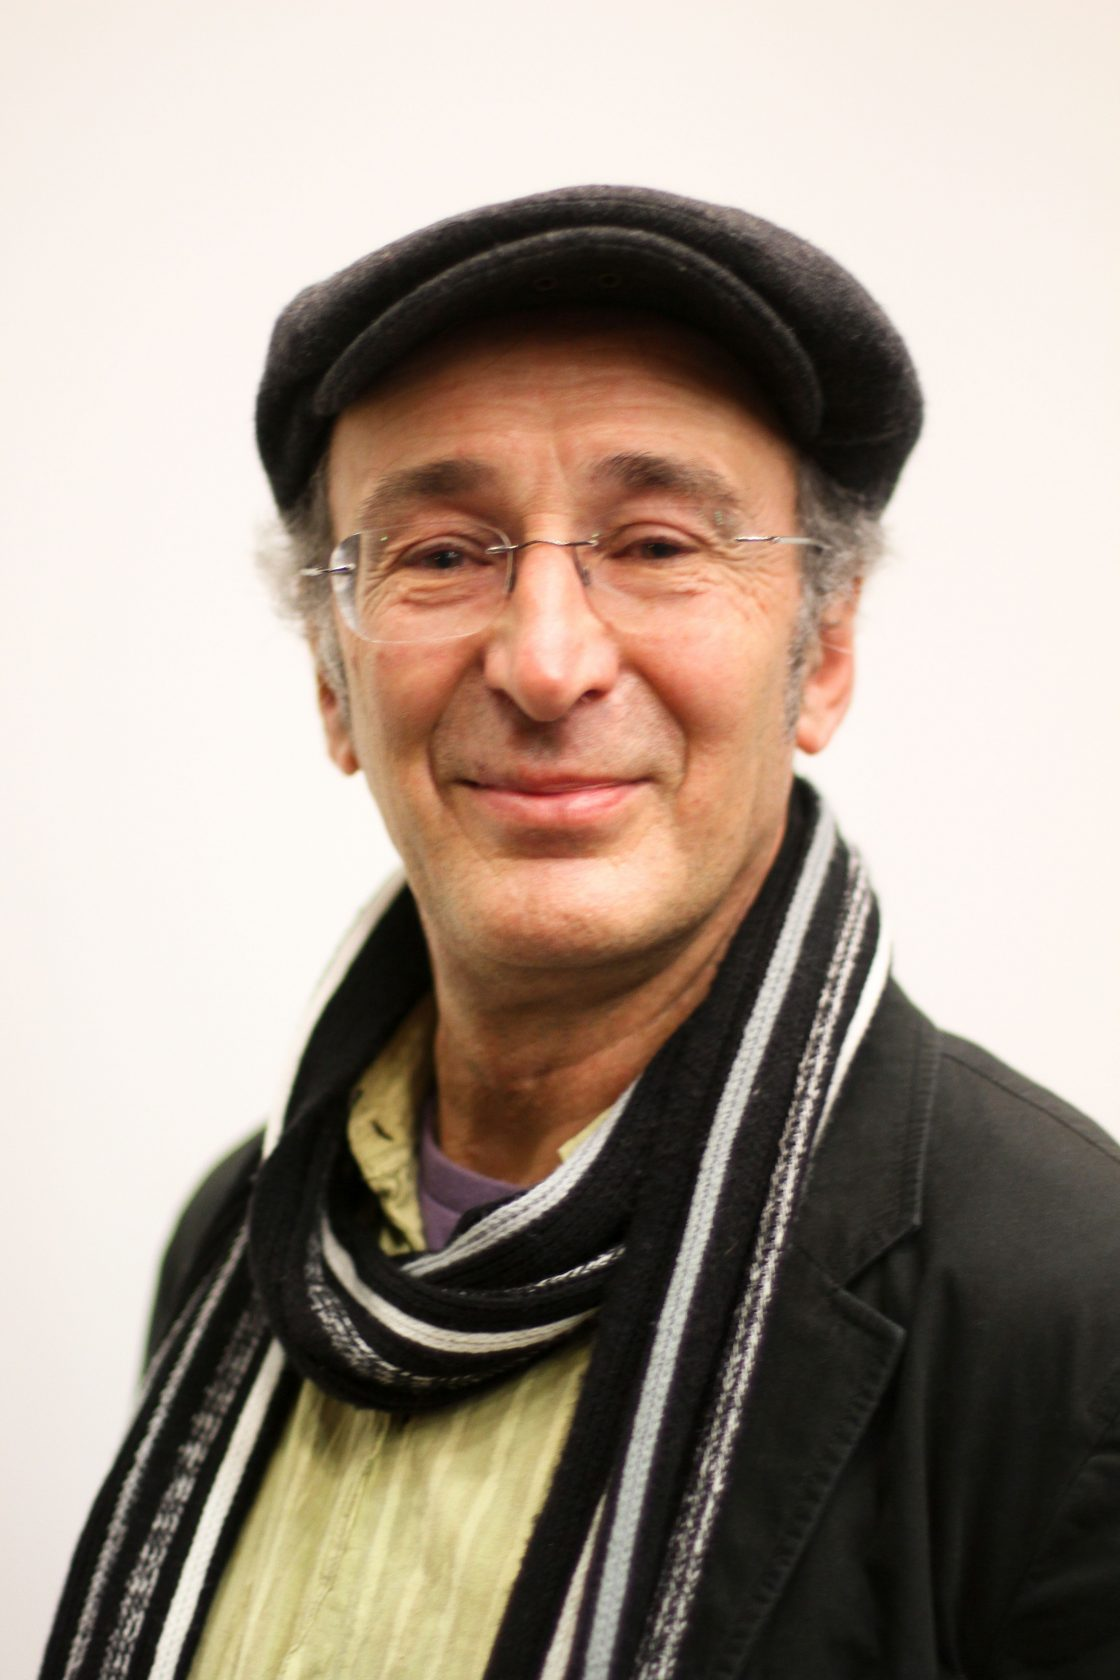 Photograph of Mike Layward who is the artistic director of DASH. He is facing the camera, wearing a black flat cap and long striped scarf.